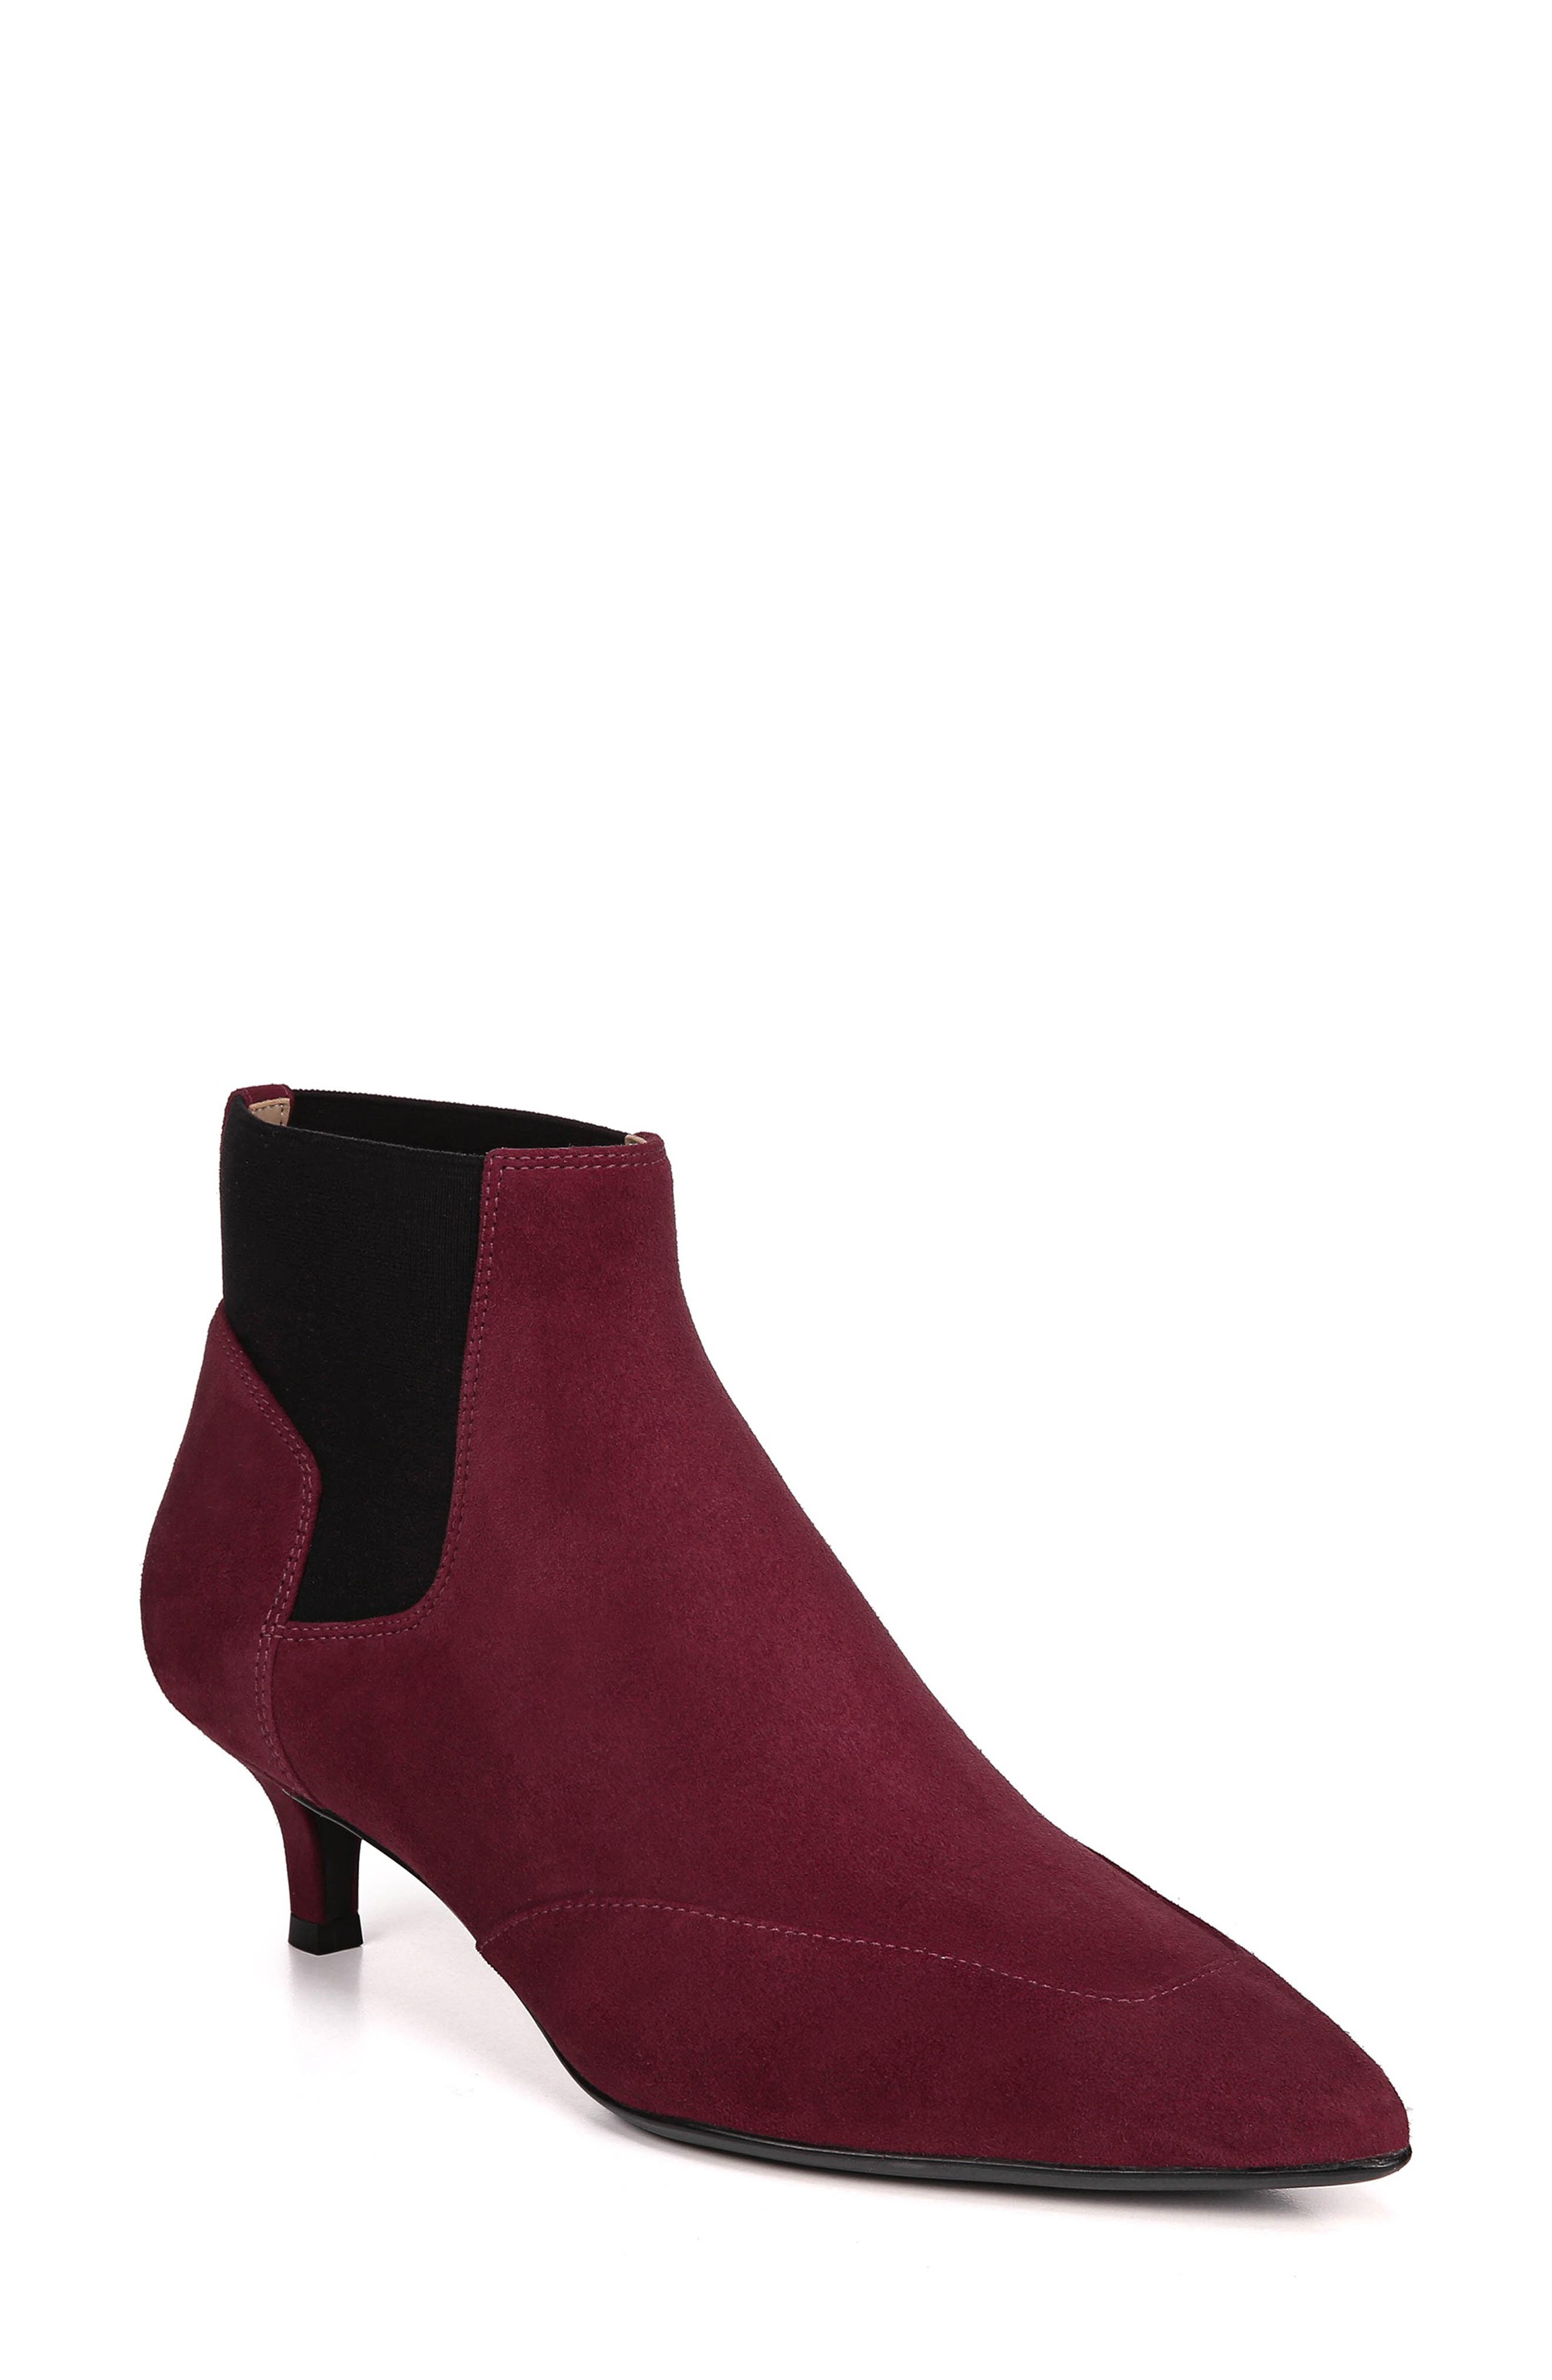 Naturalizer Piper Bootie W - Red